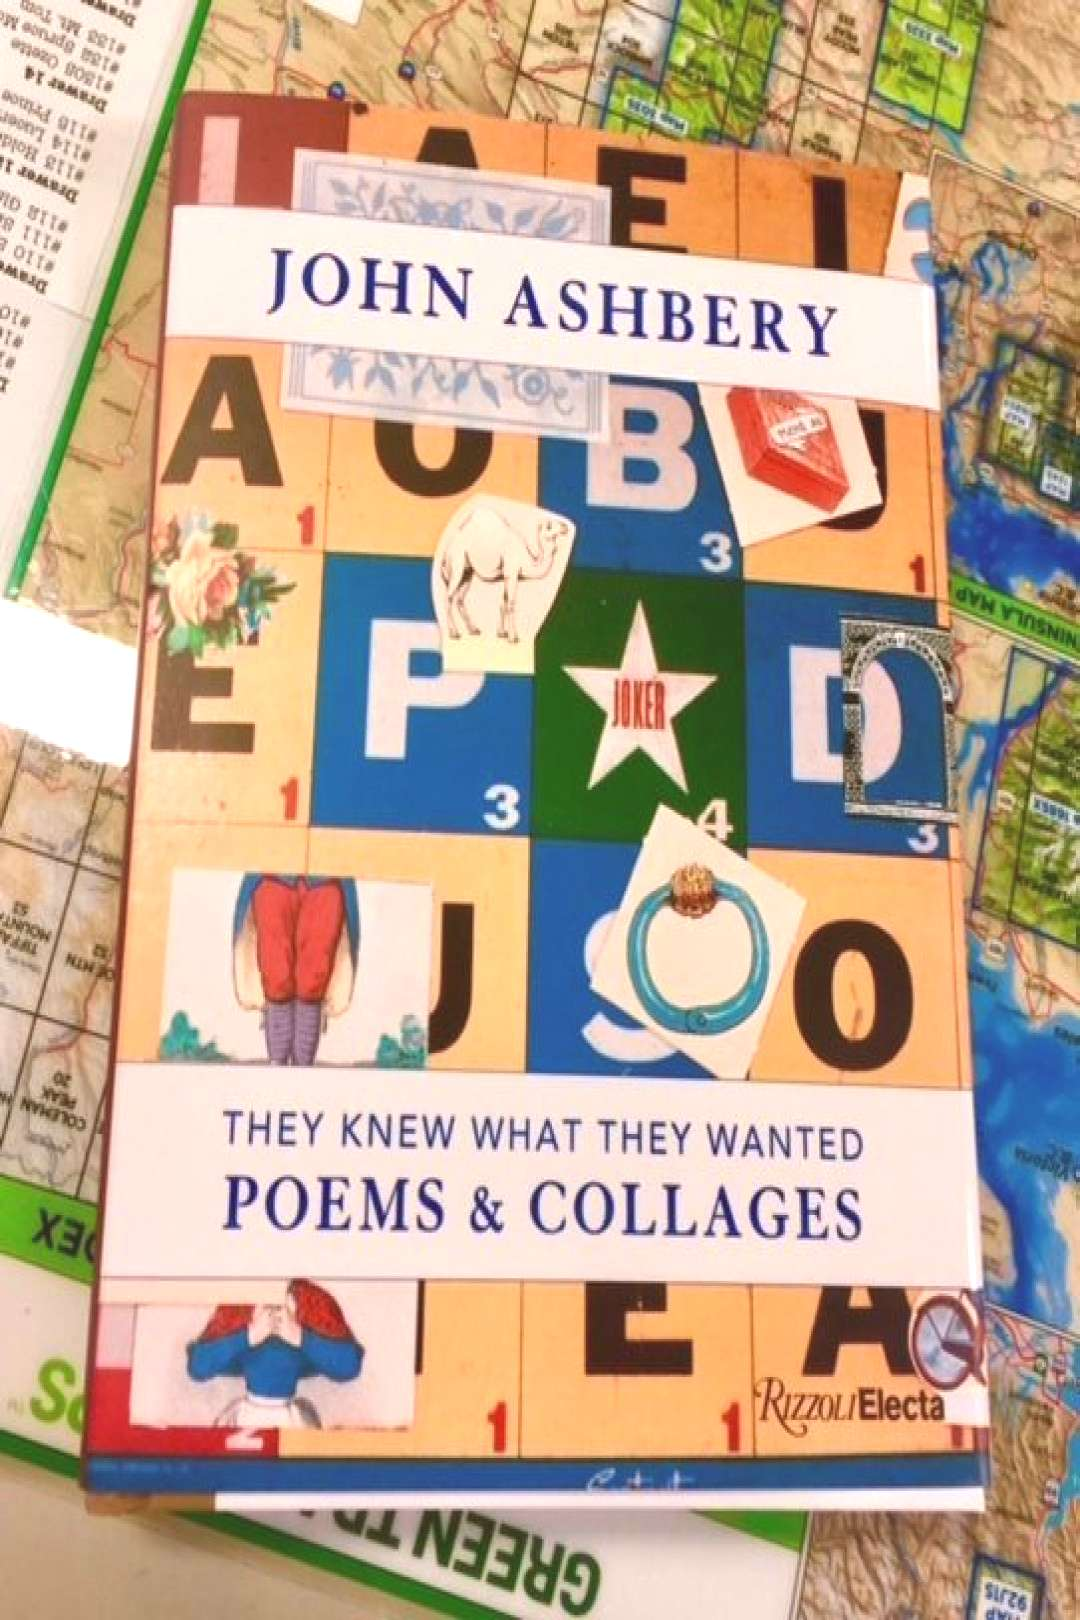 New From Rizzoli Electra They Knew What They Wanted Poems Collages By John Ashbery